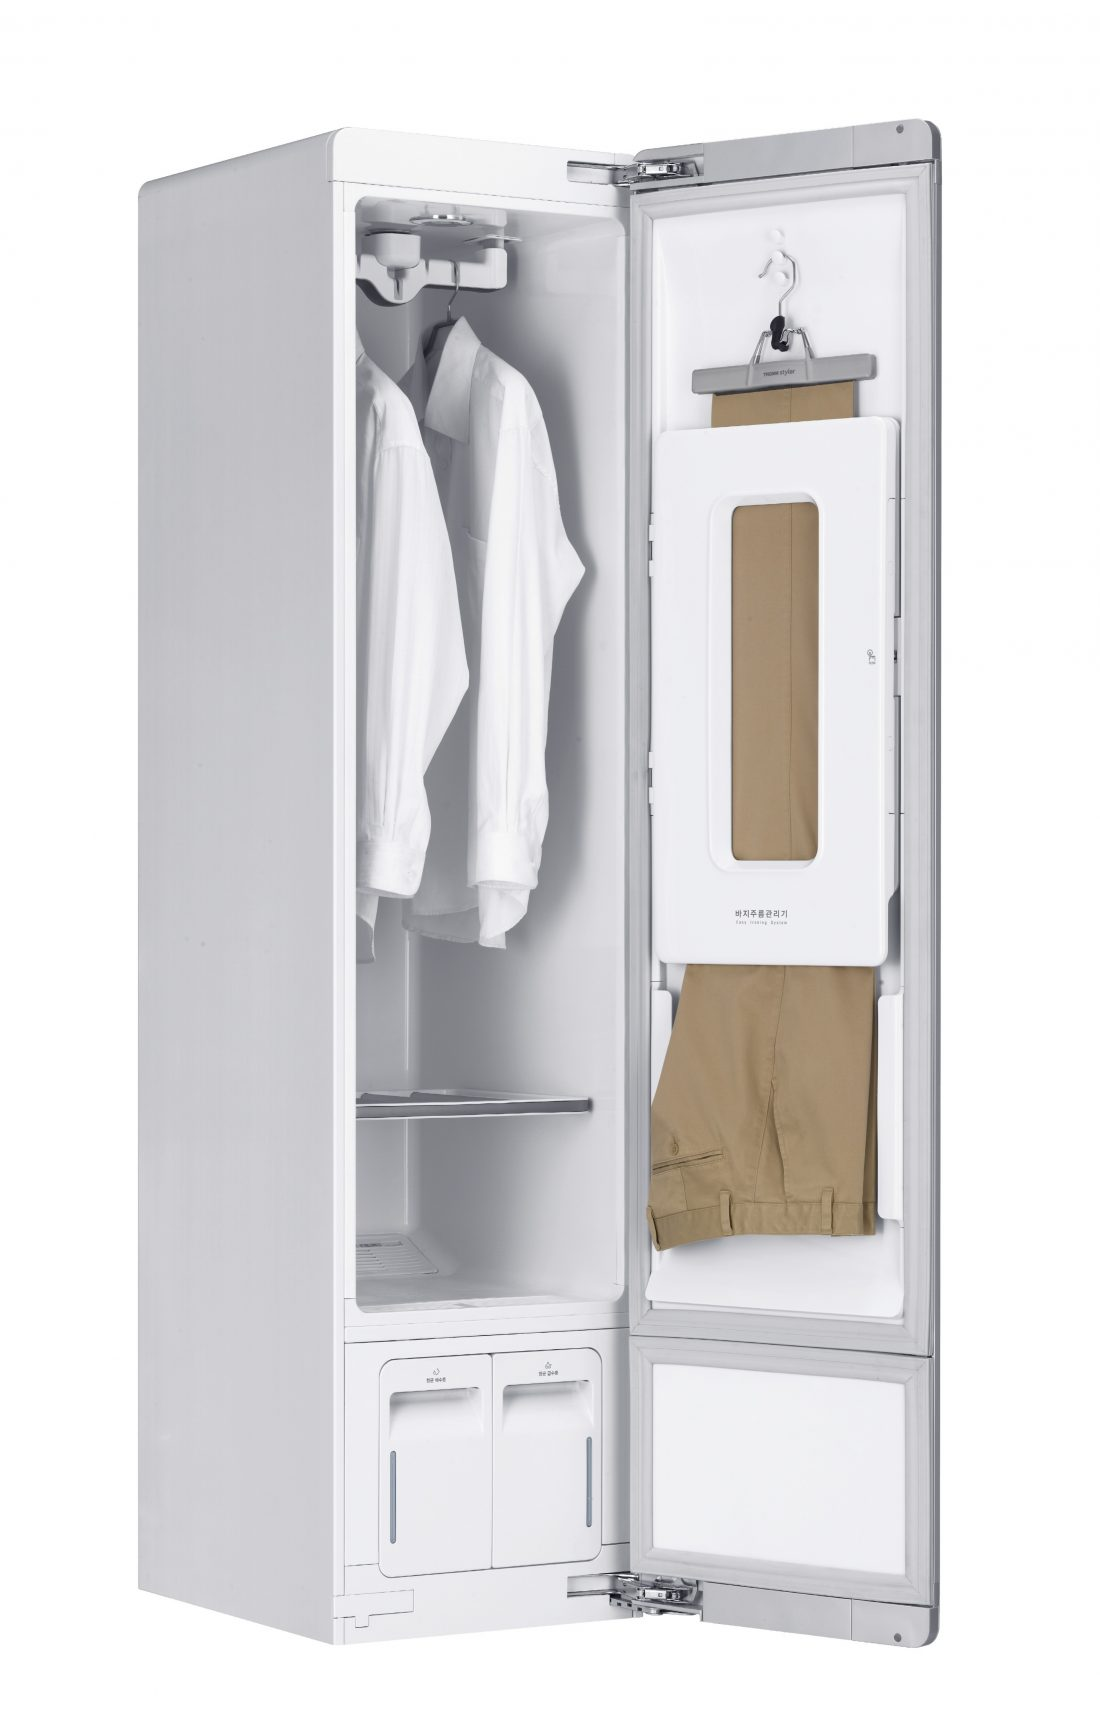 The LG Styler steam closet system facing 45 degrees to the right with the door open